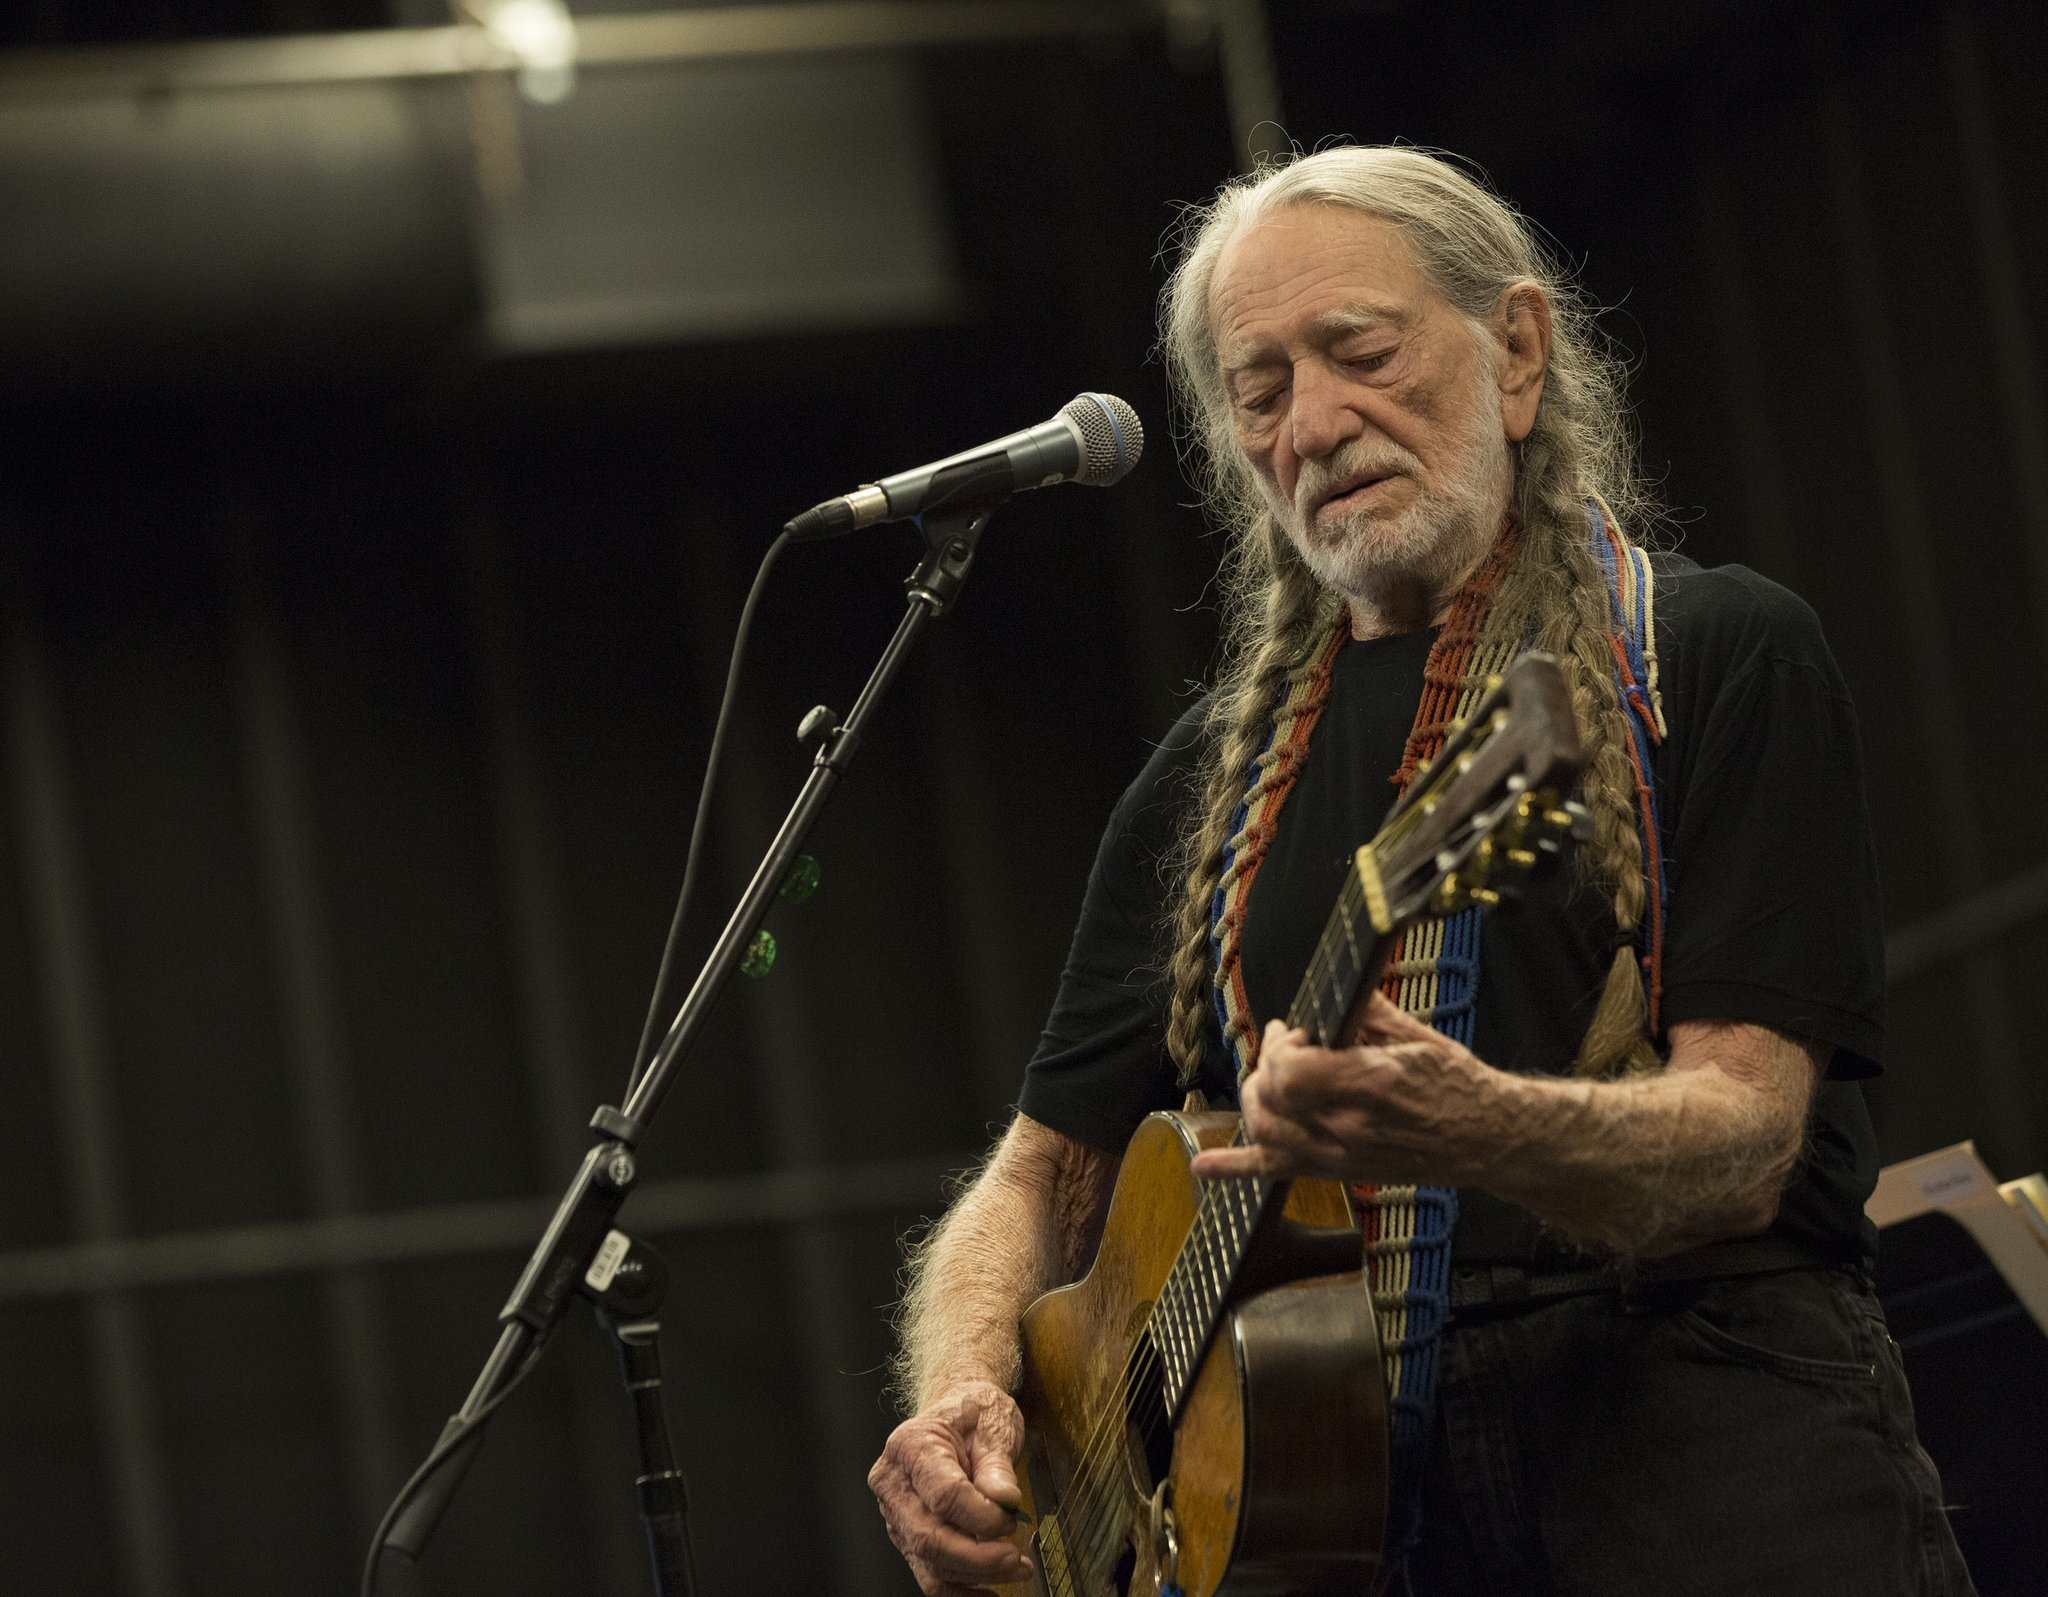 Hear @WillieNelson's wonderful new uptempo rambler 'Me And You' https://t.co/jkWoSbTPUI https://t.co/3A2b4w5a0w